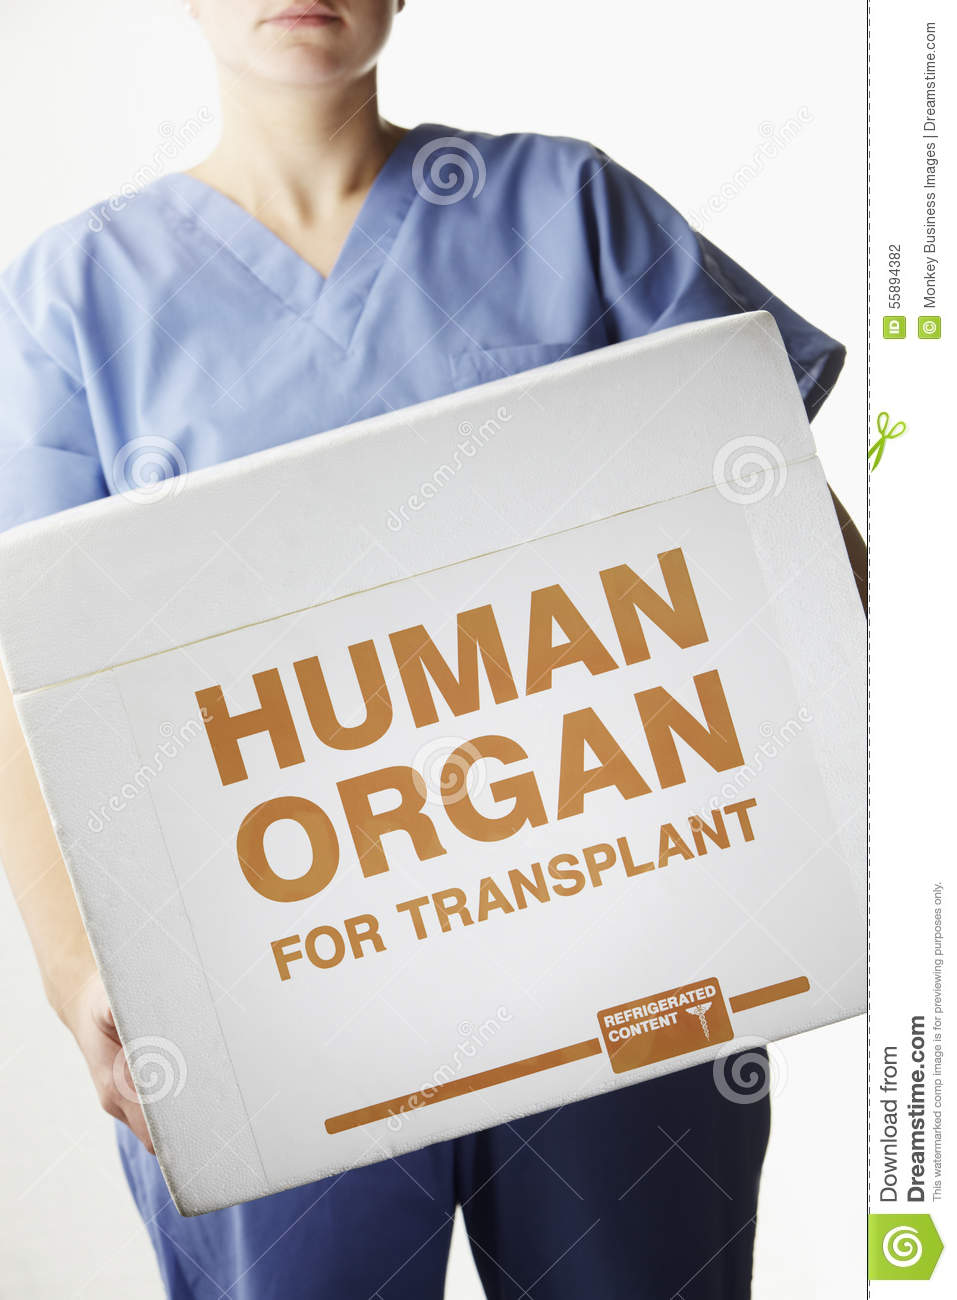 Argumentative essay on organ donation research (creative writing prompts gifted students)